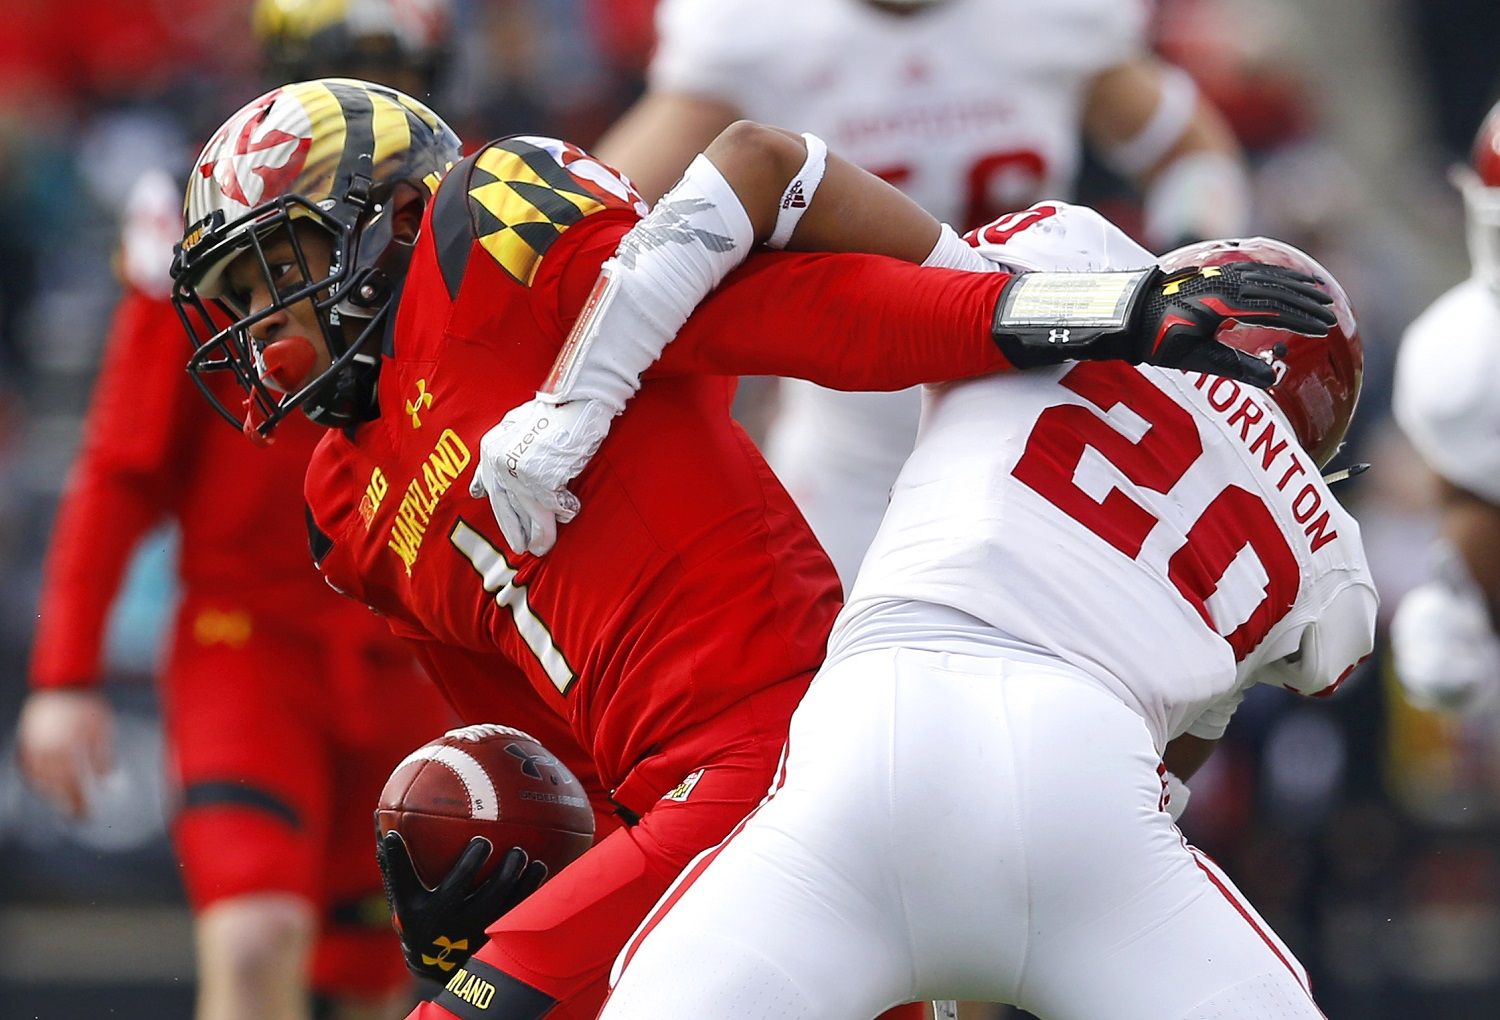 Covering the Bases: Maryland football continues to fumble